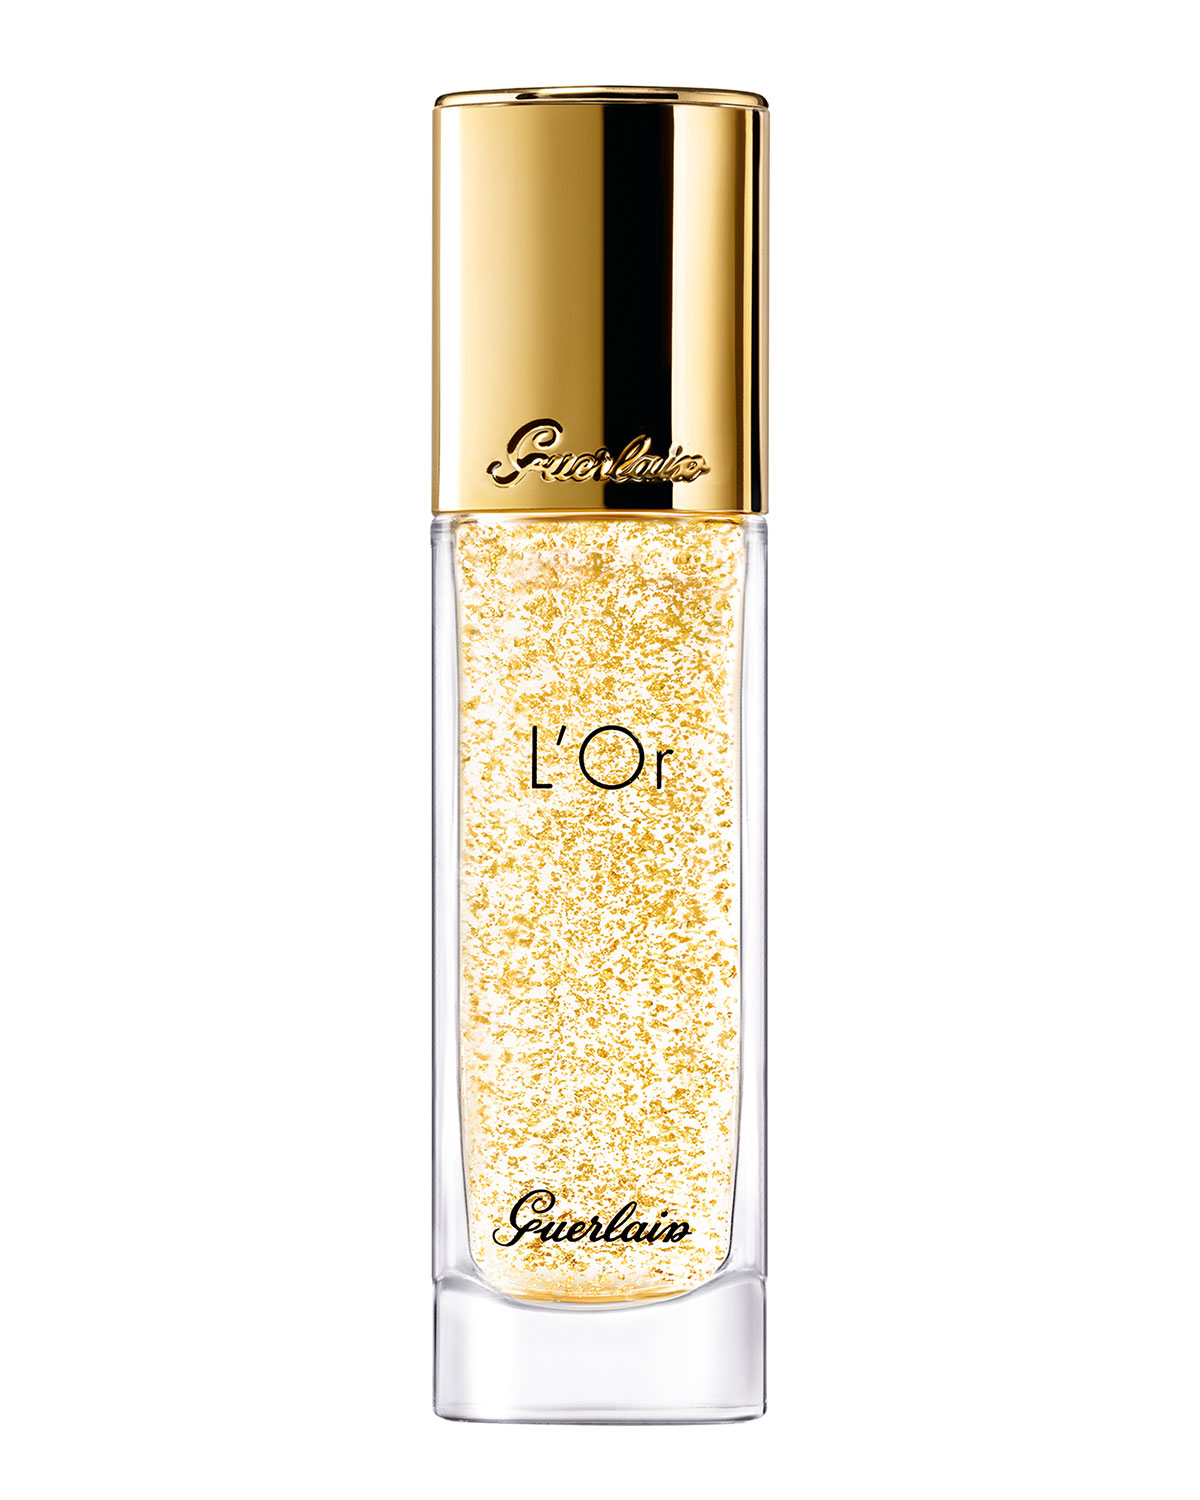 L'or Radiance Concentration With Pure Gold, 1.0 Oz. by Guerlain